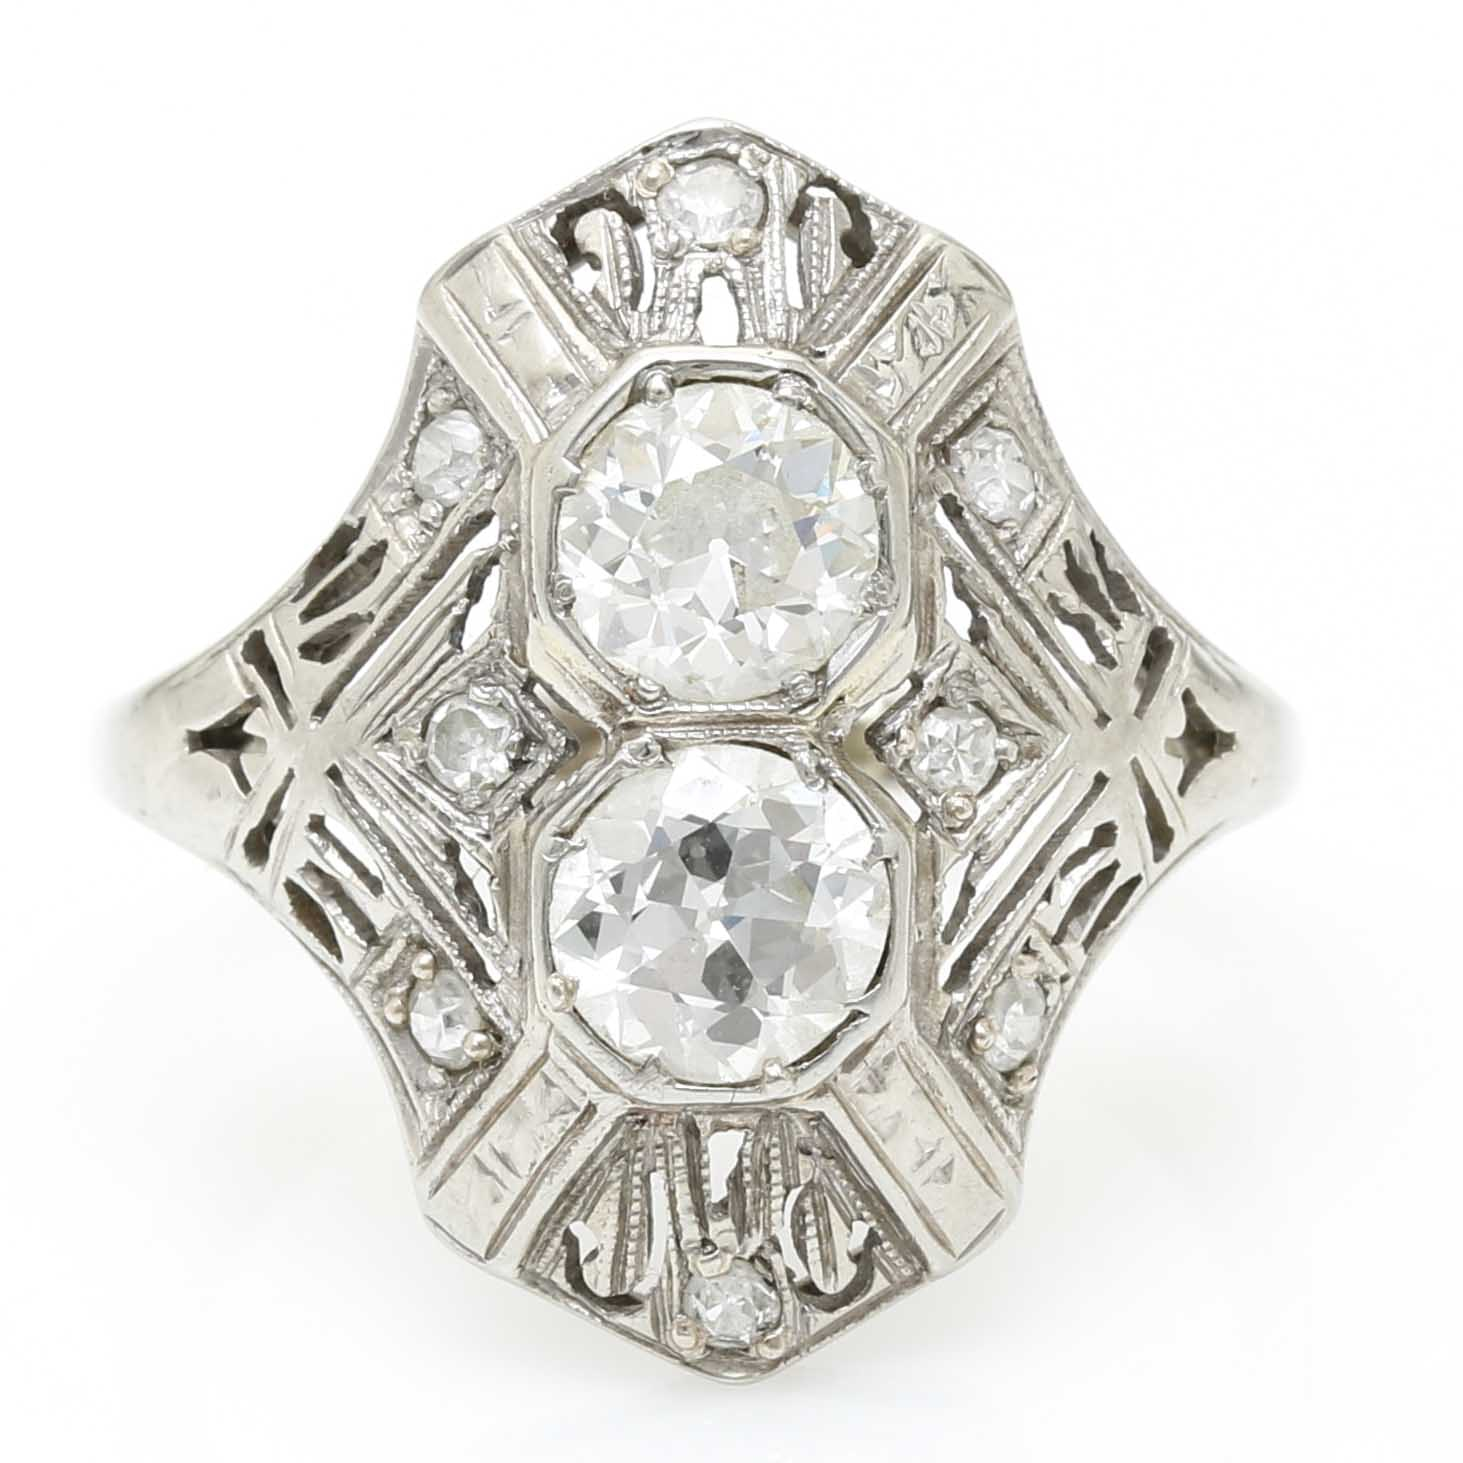 18K White Gold Late Edwardian Two Stone Diamond Dinner Ring